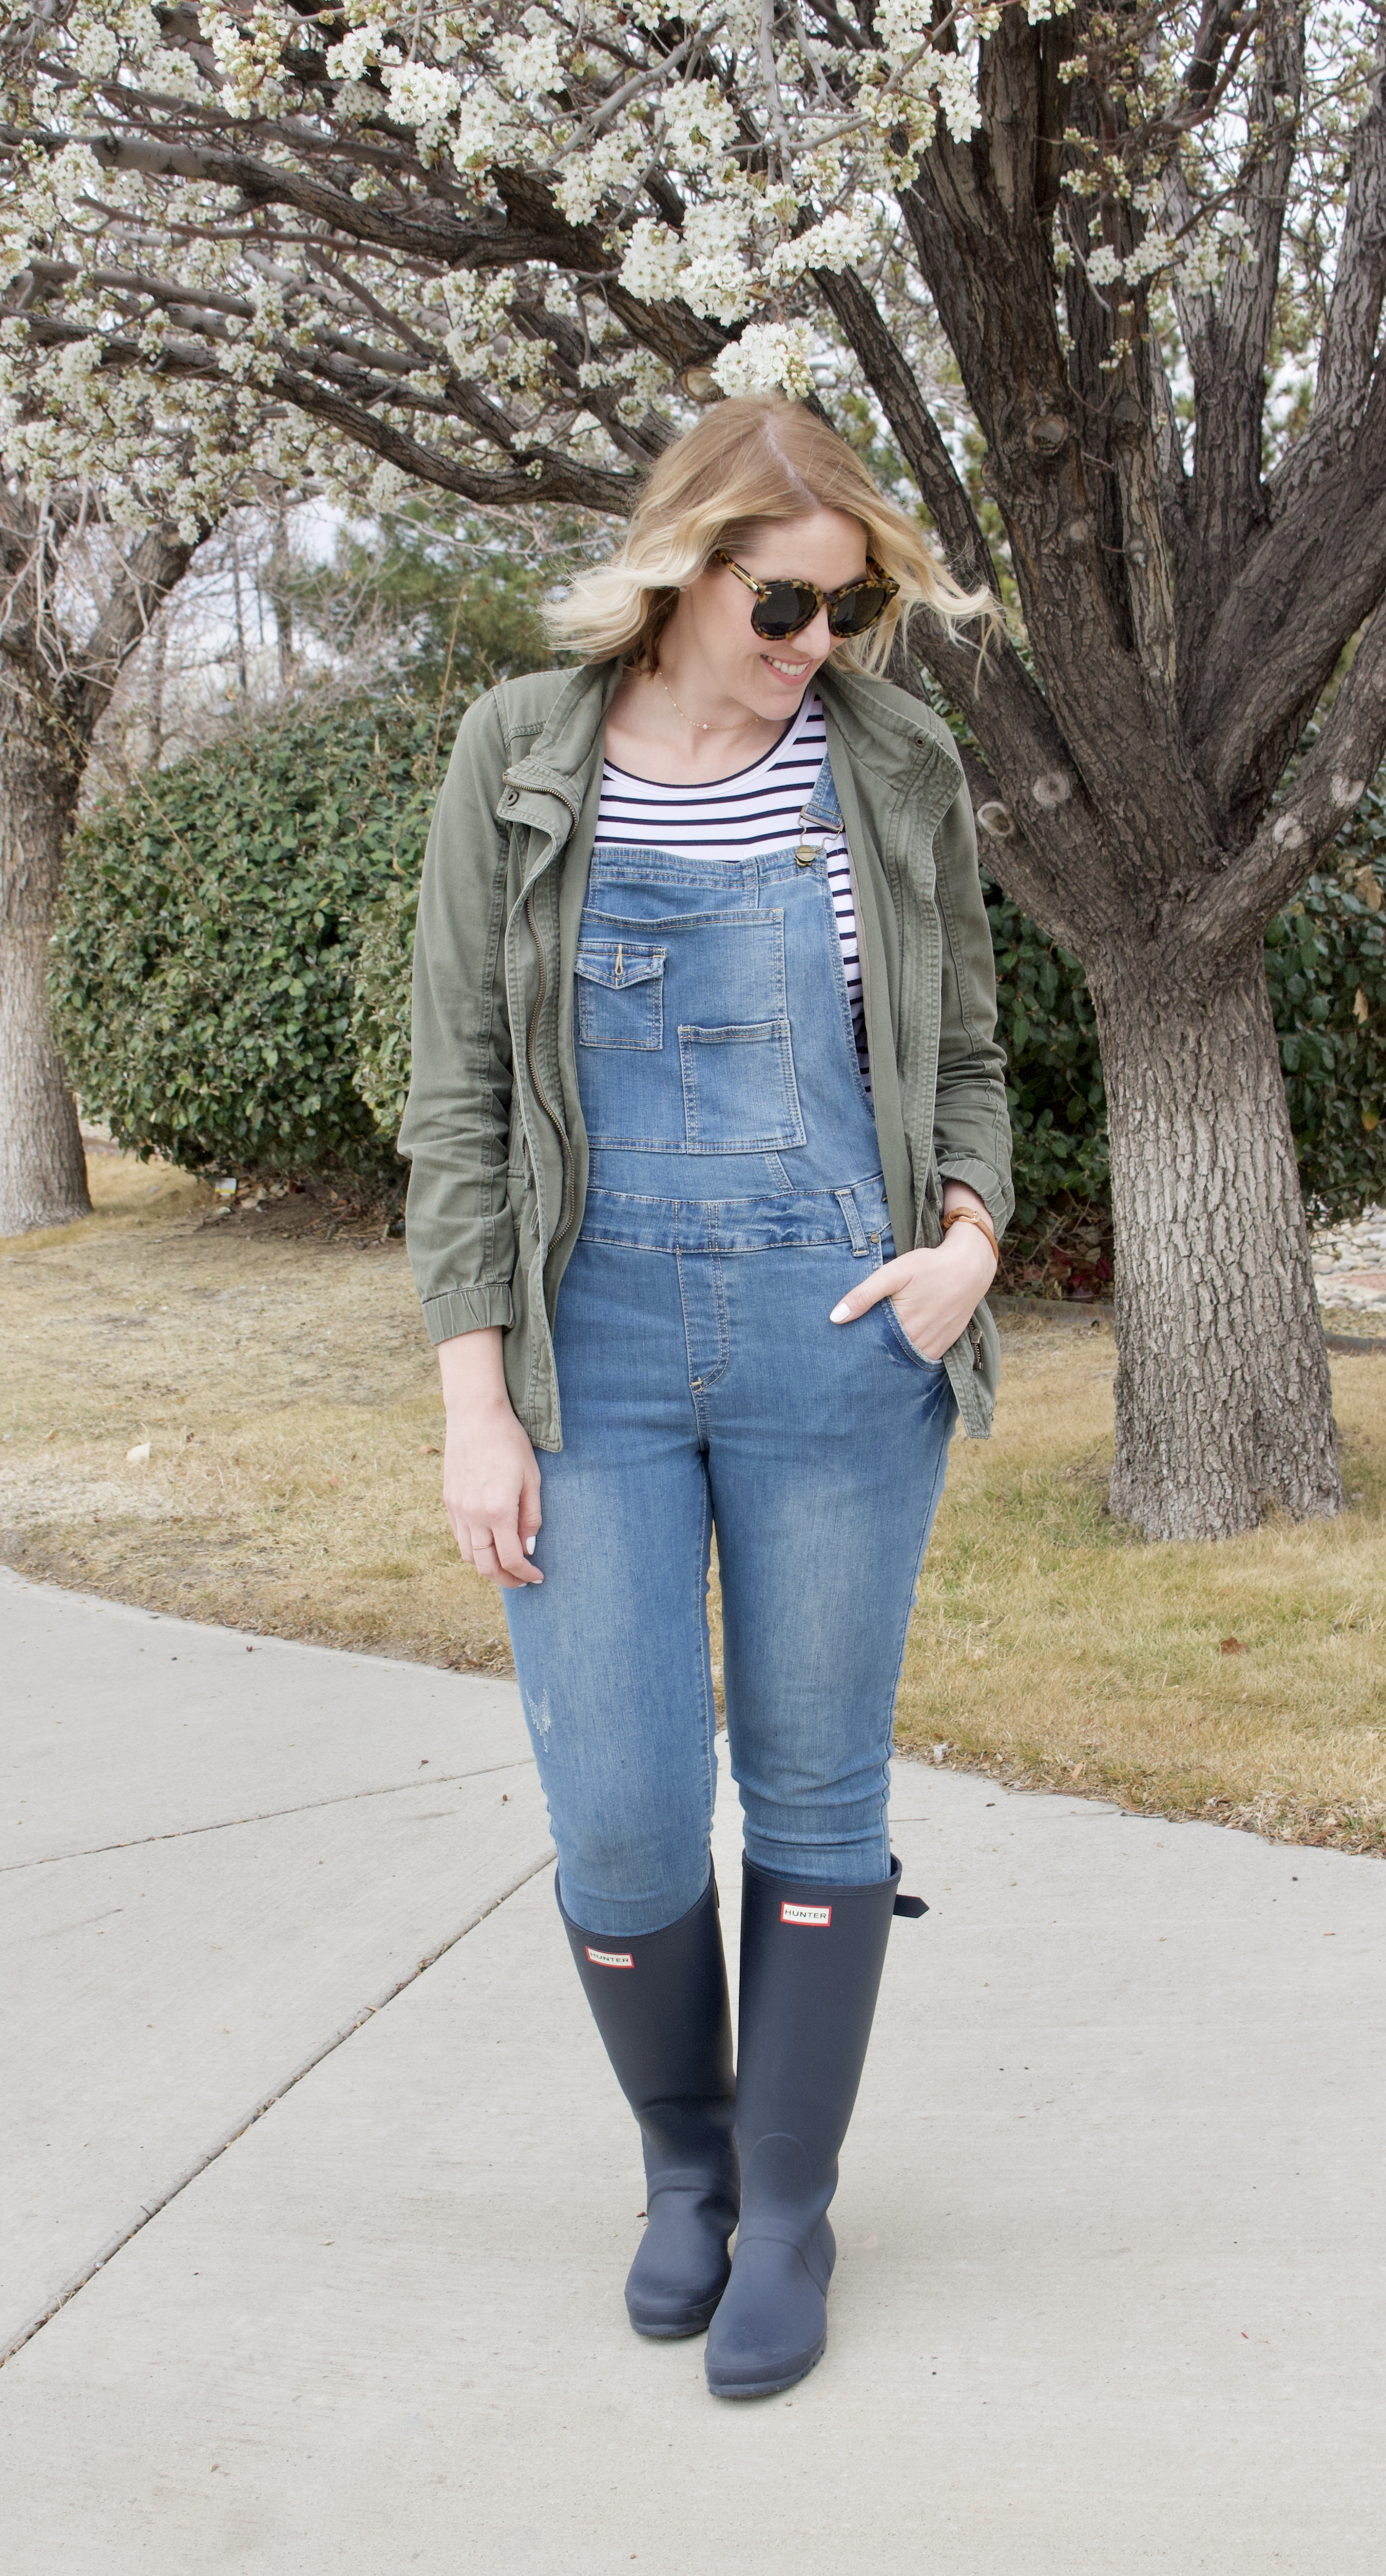 hunter boots overalls outfit #hunterboots #overalls #momstyle